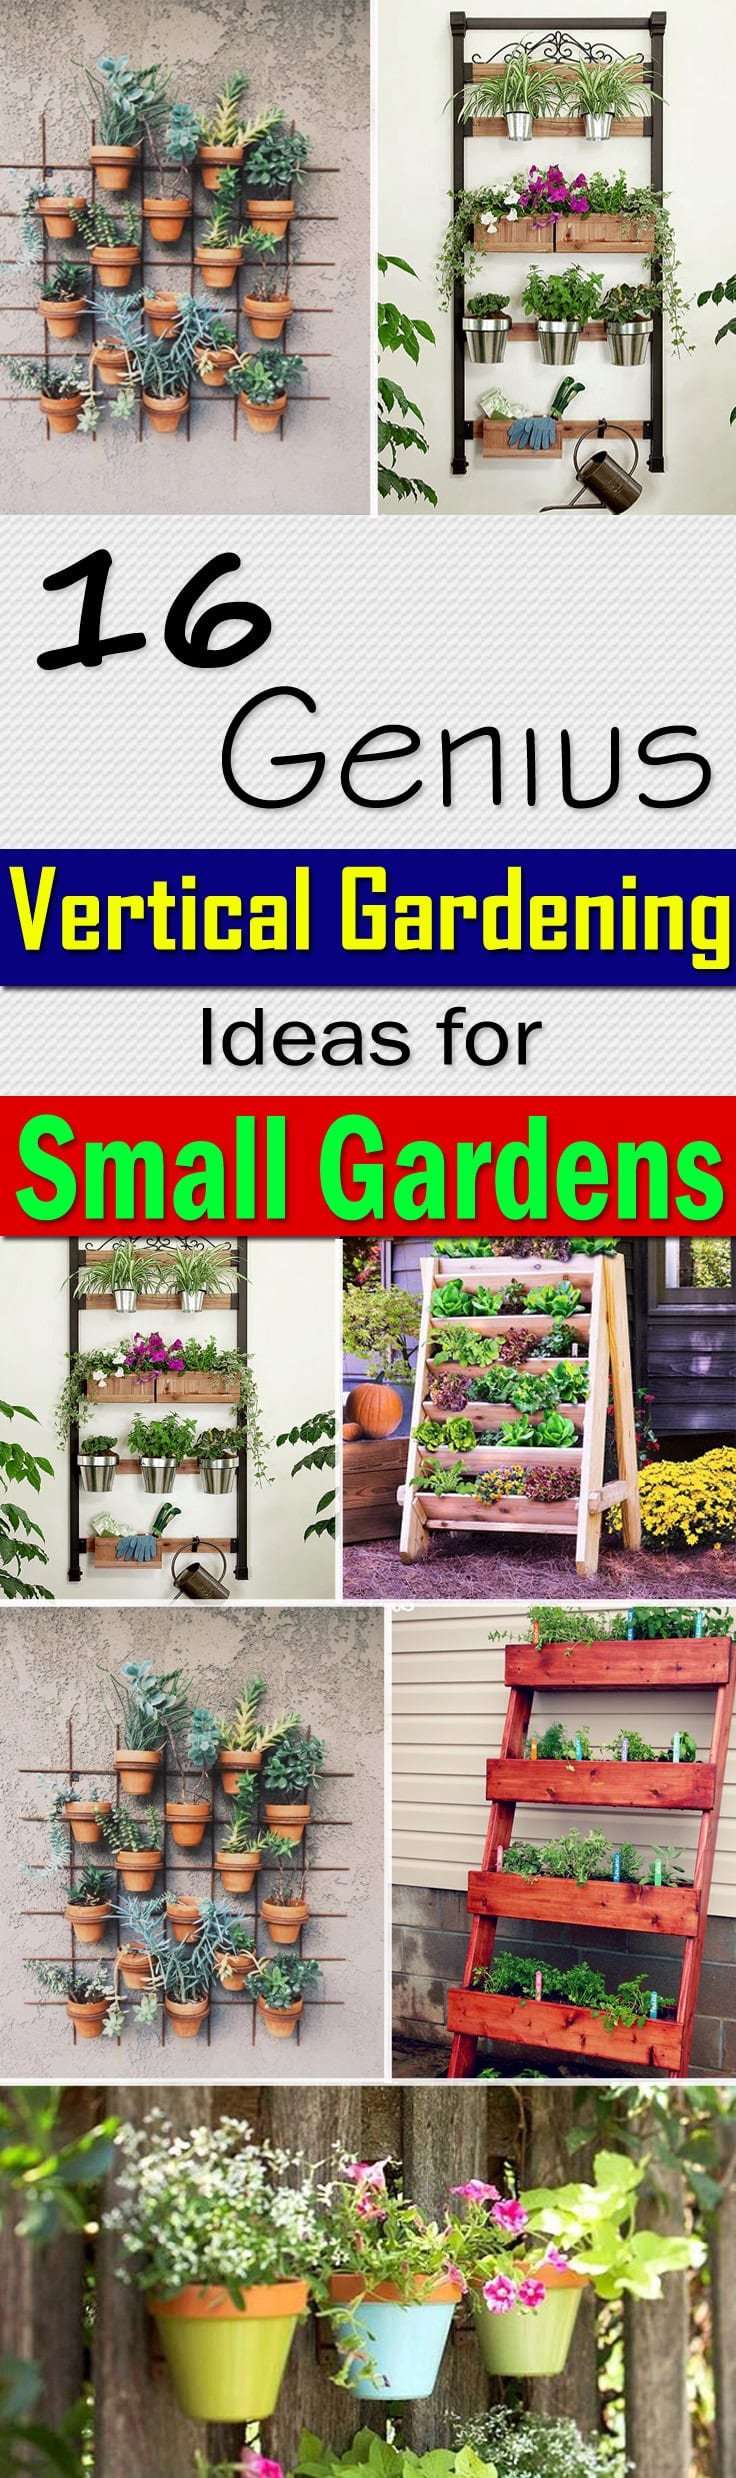 16 genius vertical gardening ideas for small gardens | balcony ... - Patio Gardening Ideas